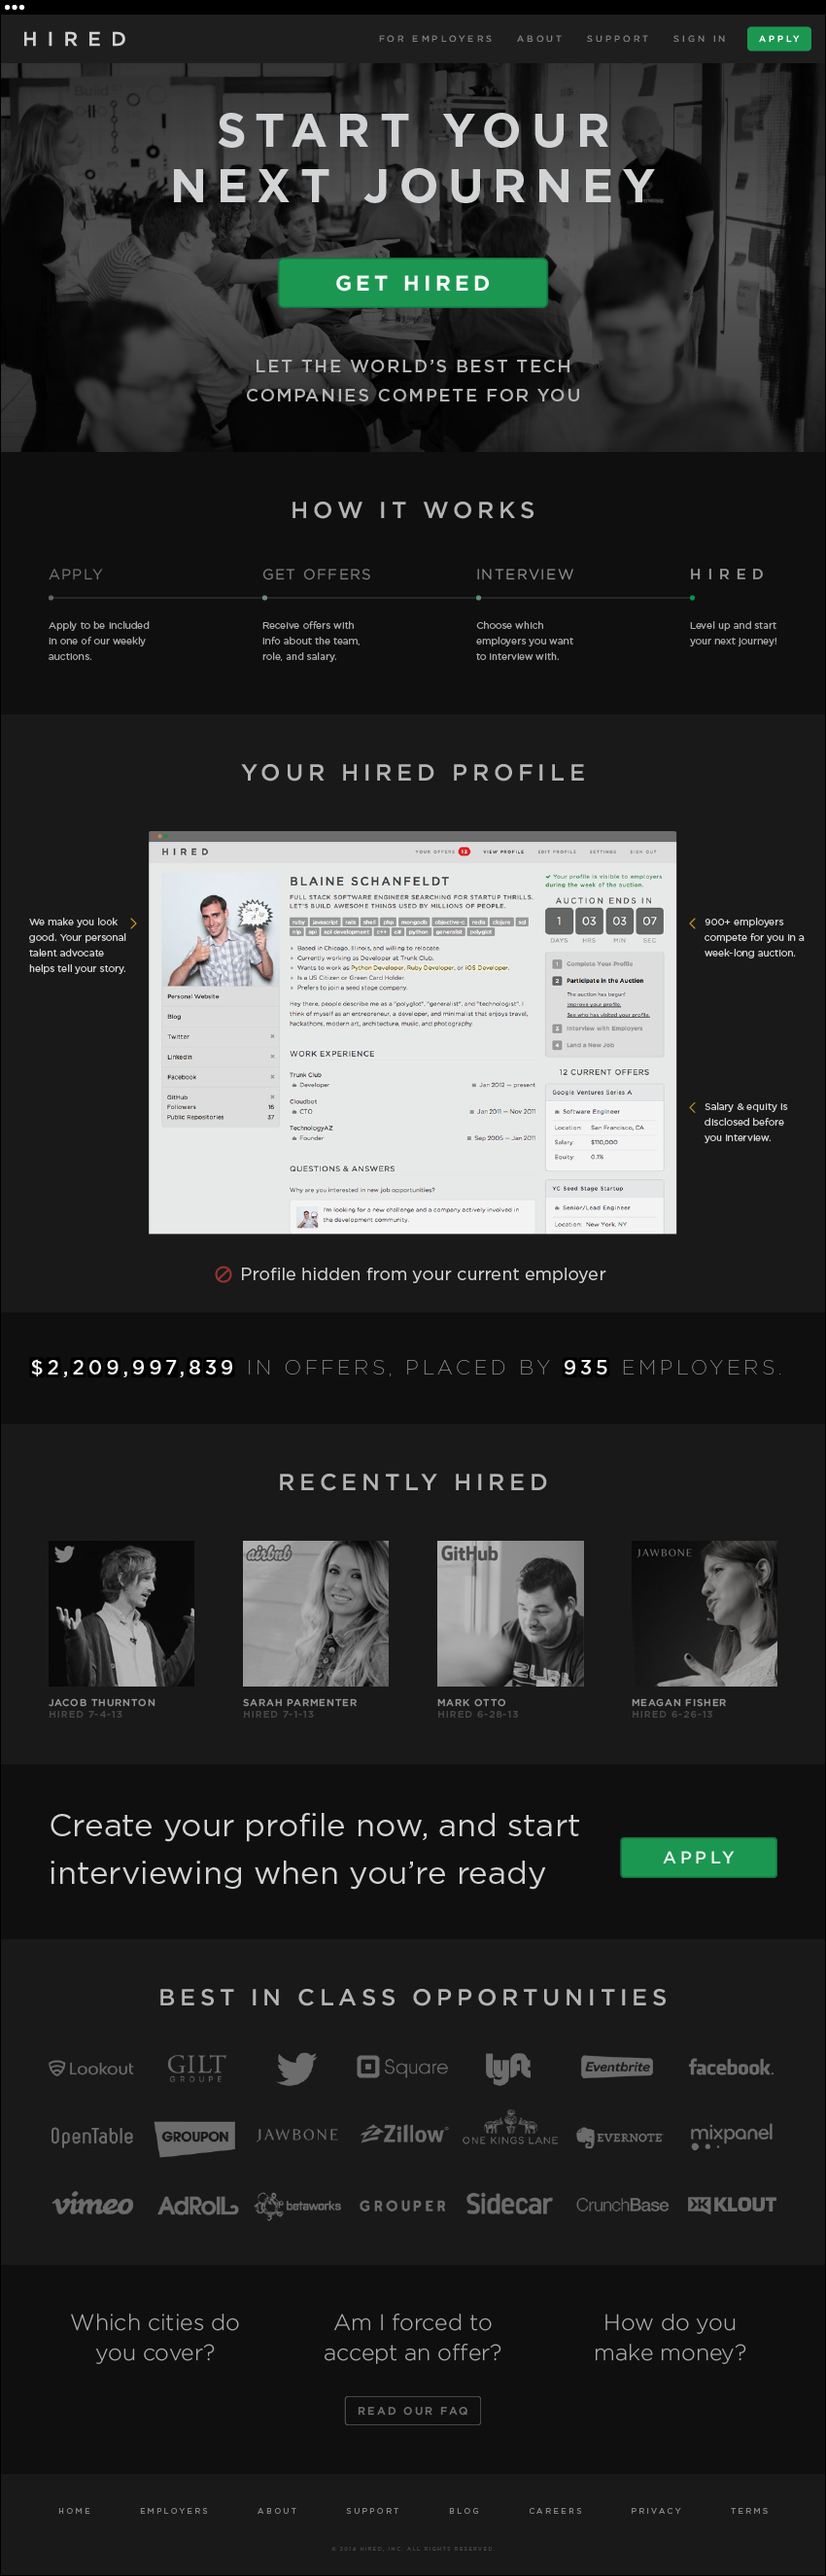 hired-homepage-f1121650.png